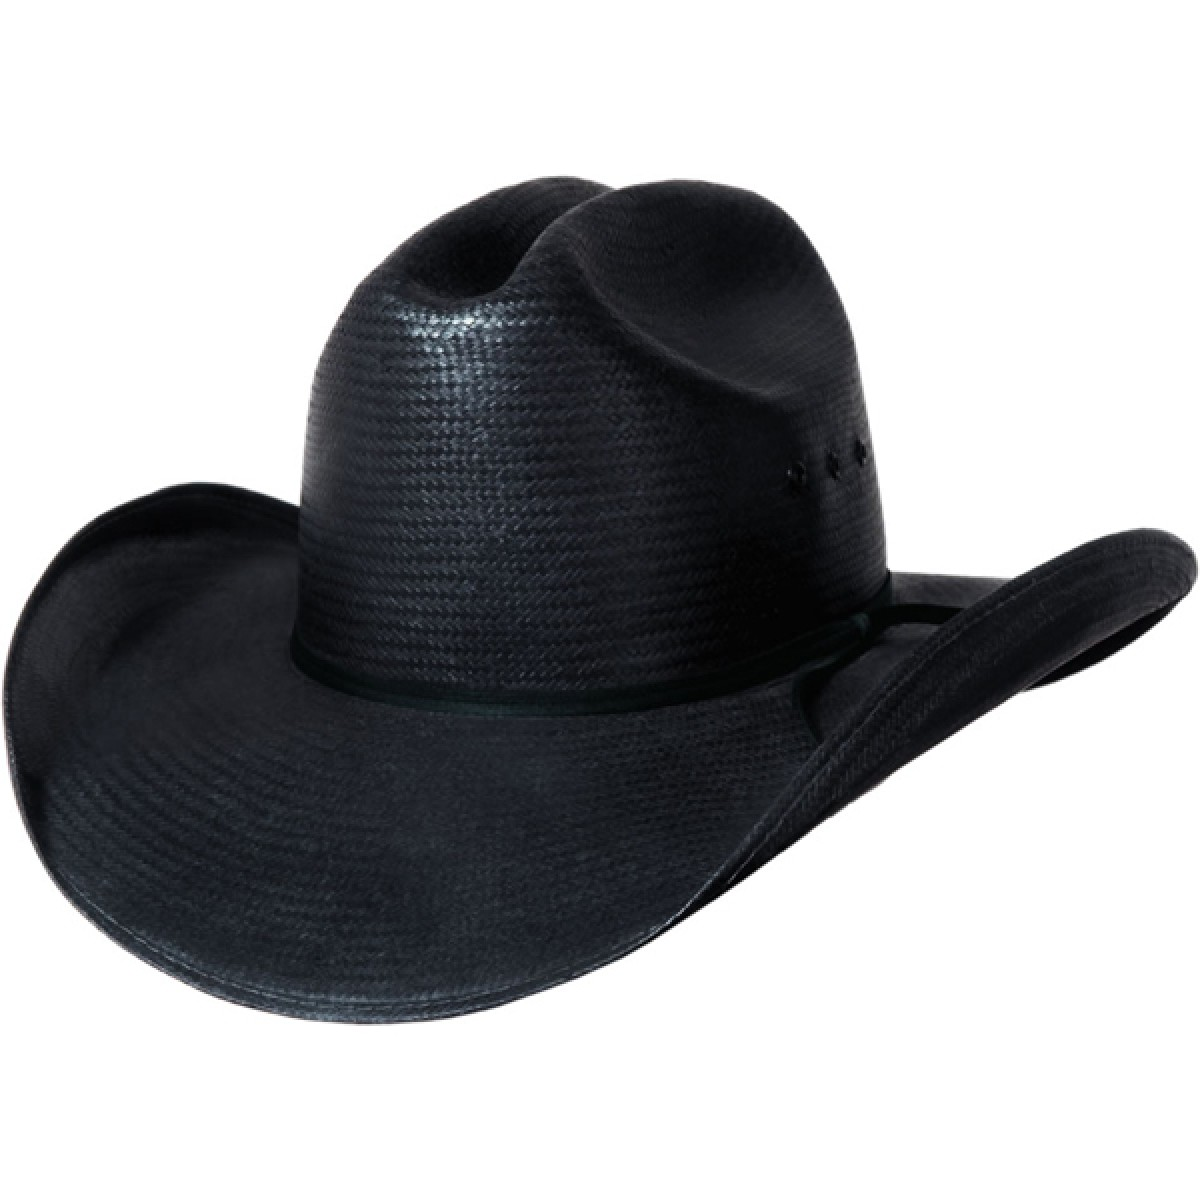 cowboy hats bullhide mcgraw - shapeable straw cowboy hat ... XVTQLYW